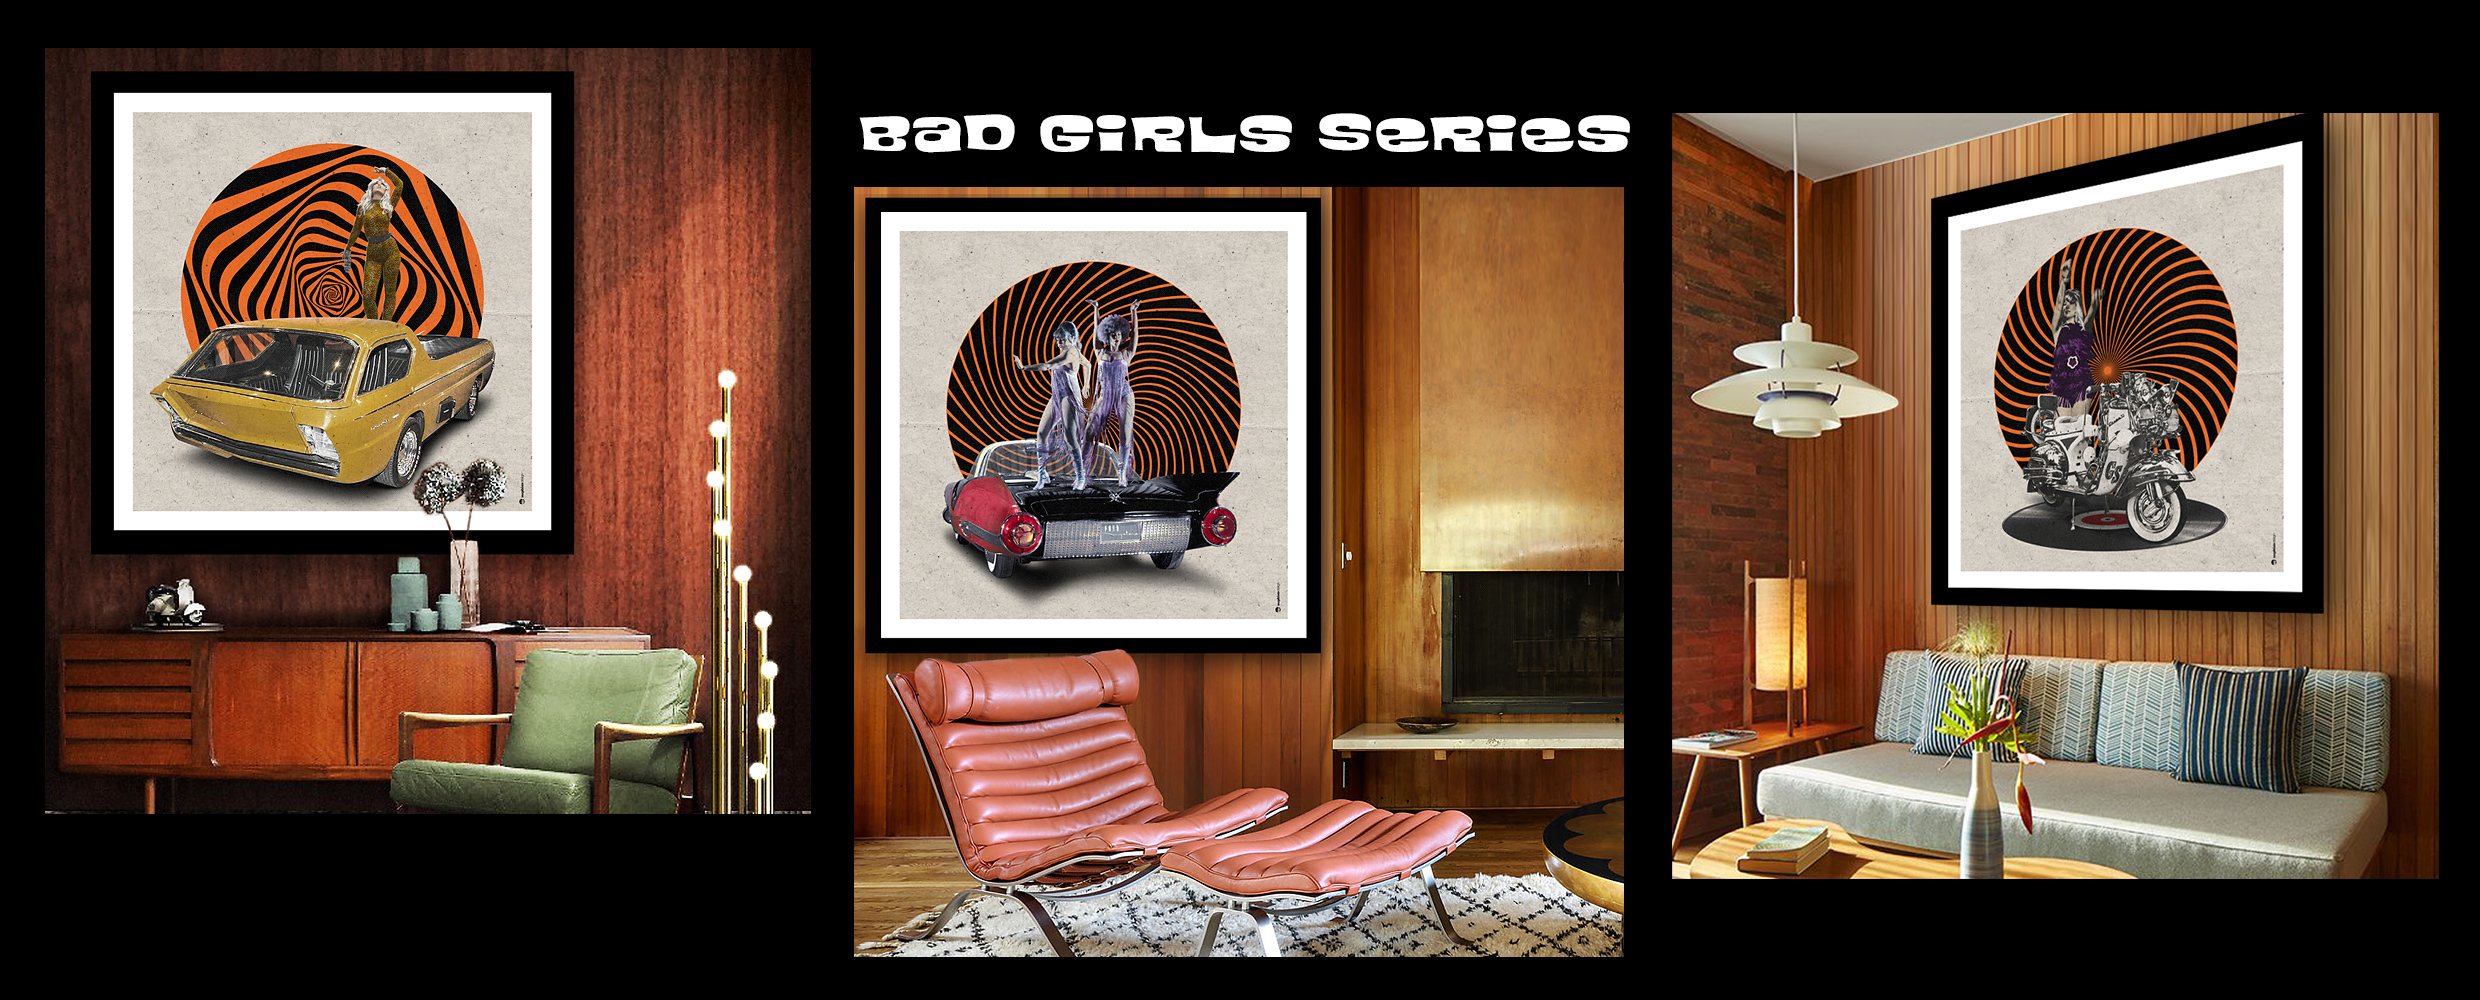 bad-girls-series-mephistodesign-posters